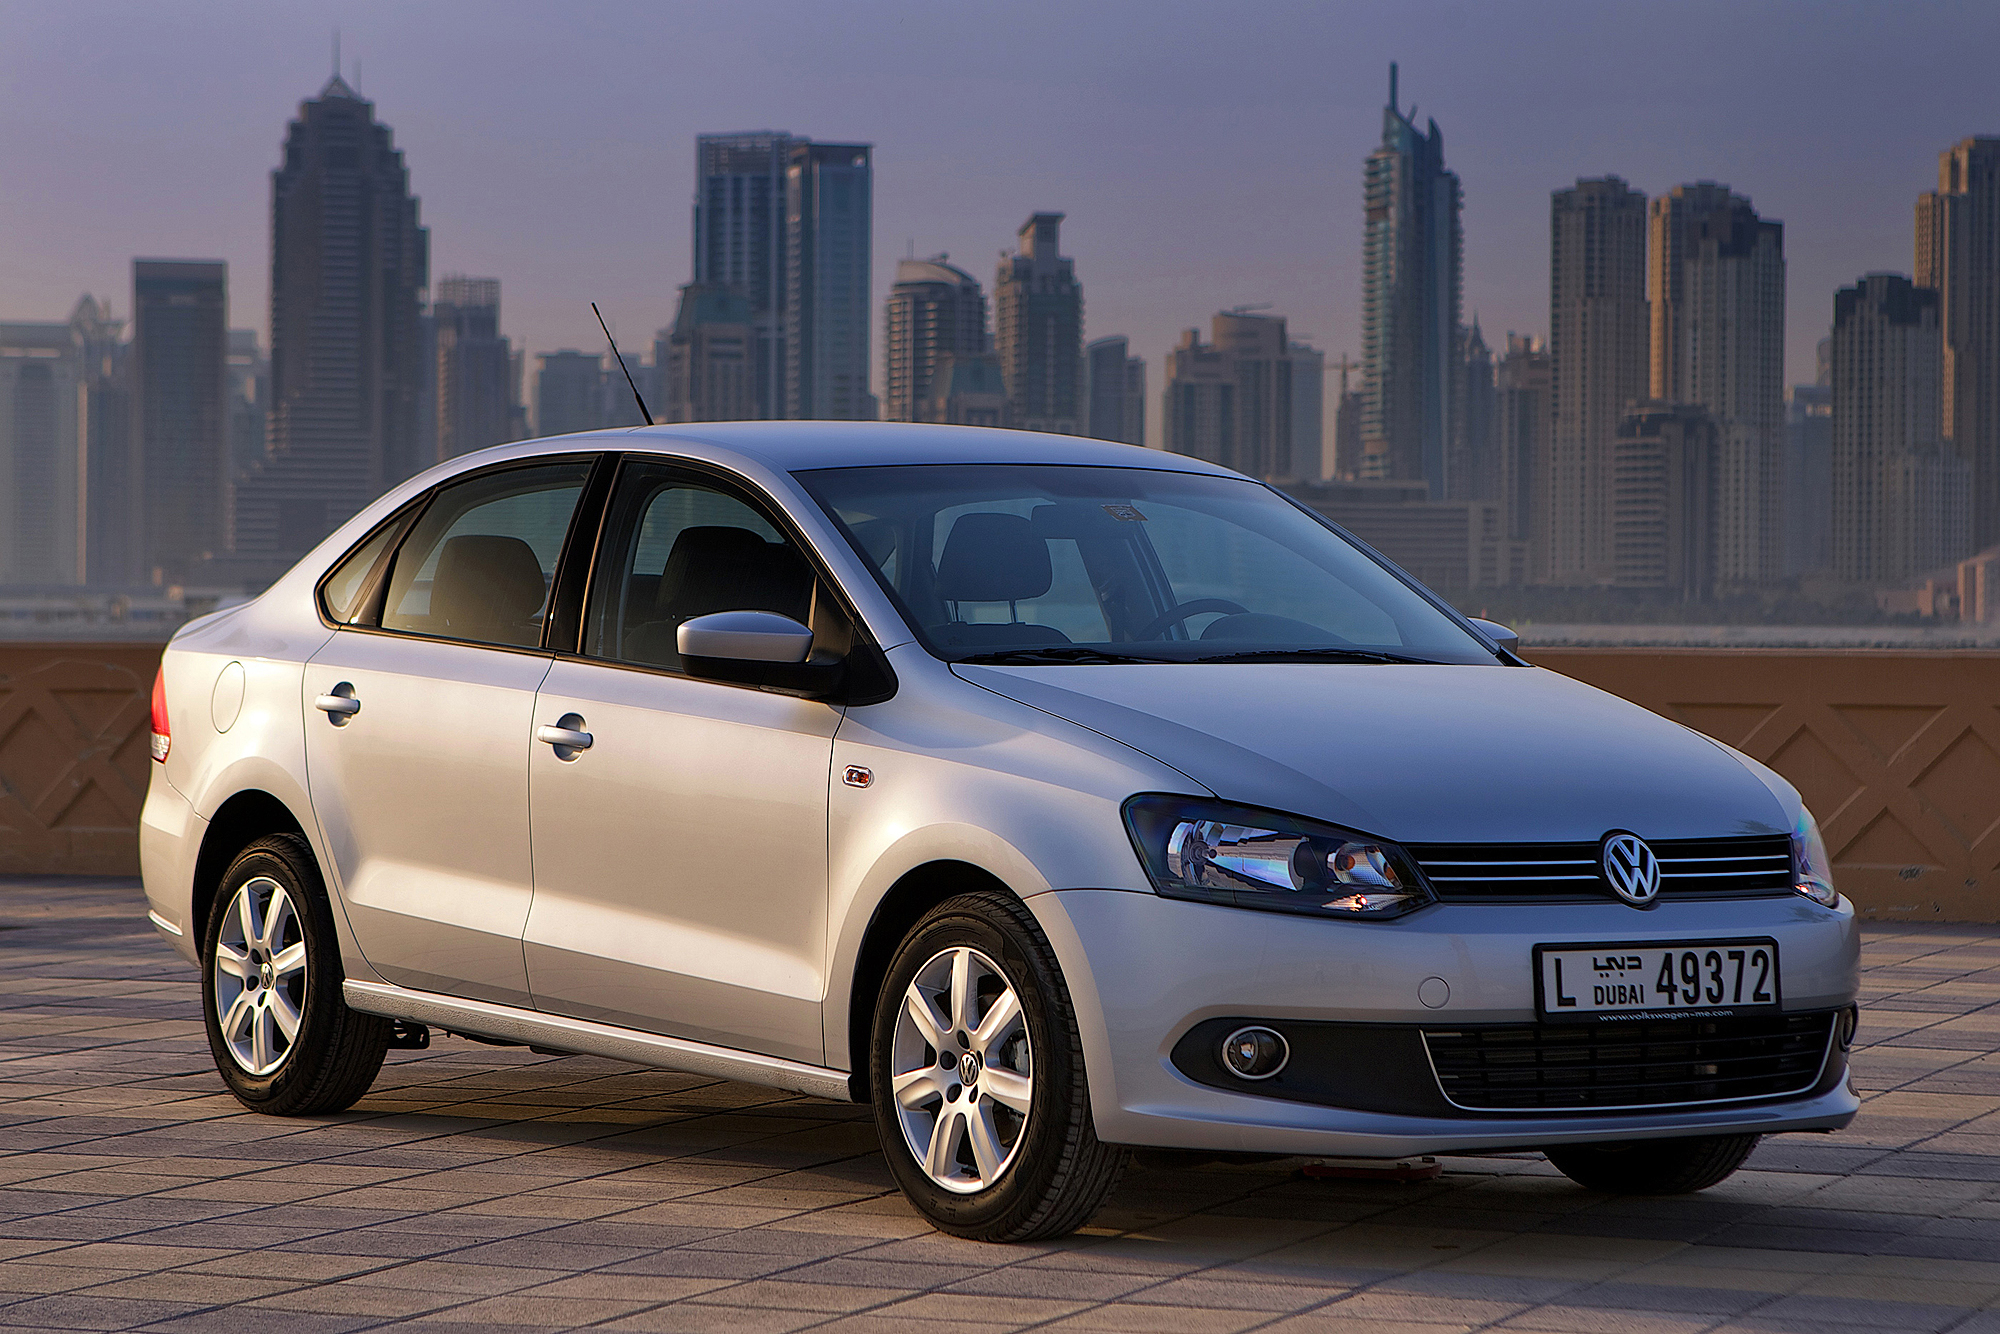 Reviews of owners of the Volkswagen Polo and the characteristics of the new sedan